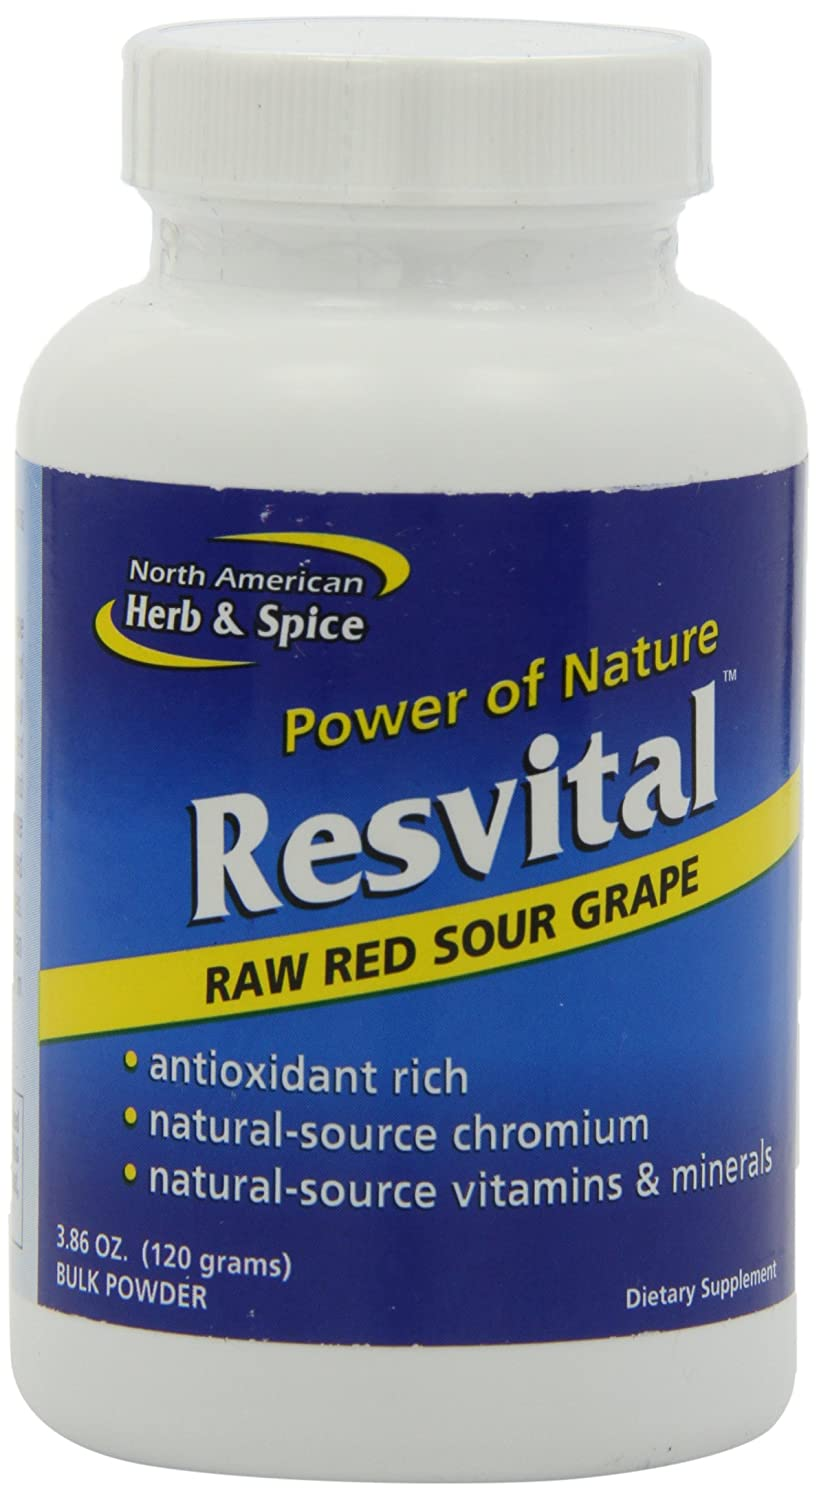 North American Herb and Spice, Resvital Bulk Powder, 120-Grams